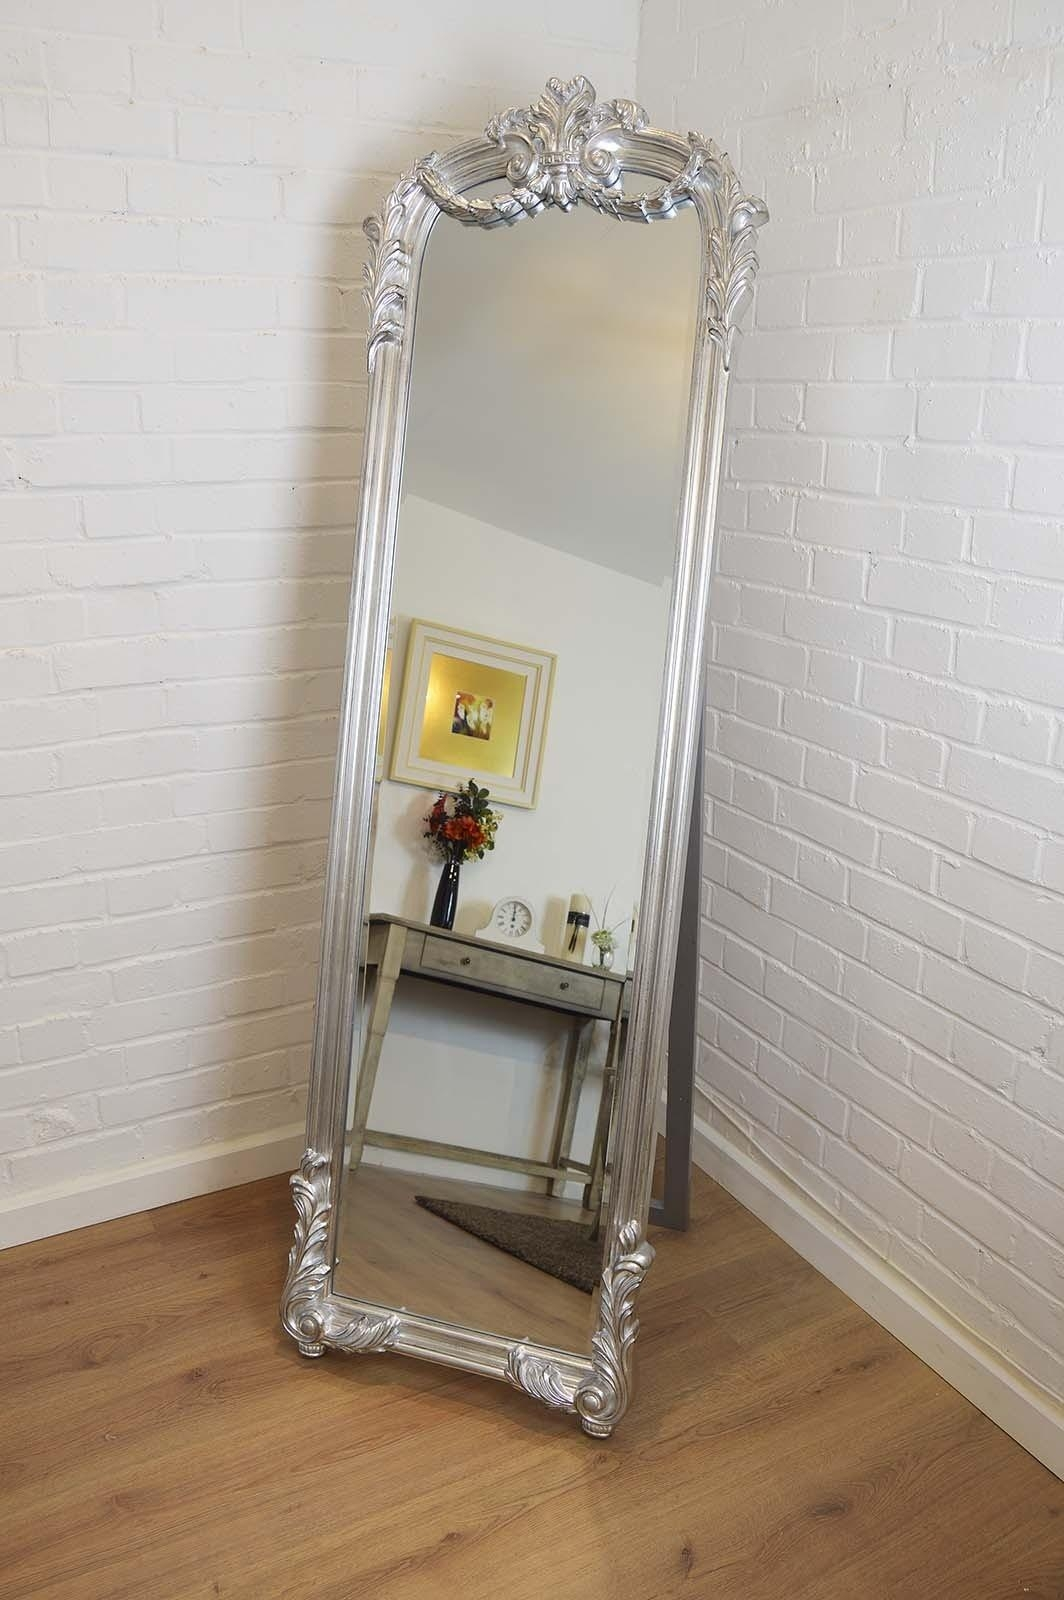 Large Free Standing Mirror 22 Awesome Exterior With Leaning Floor Pertaining To Free Standing Mirror With Drawer (Image 19 of 20)